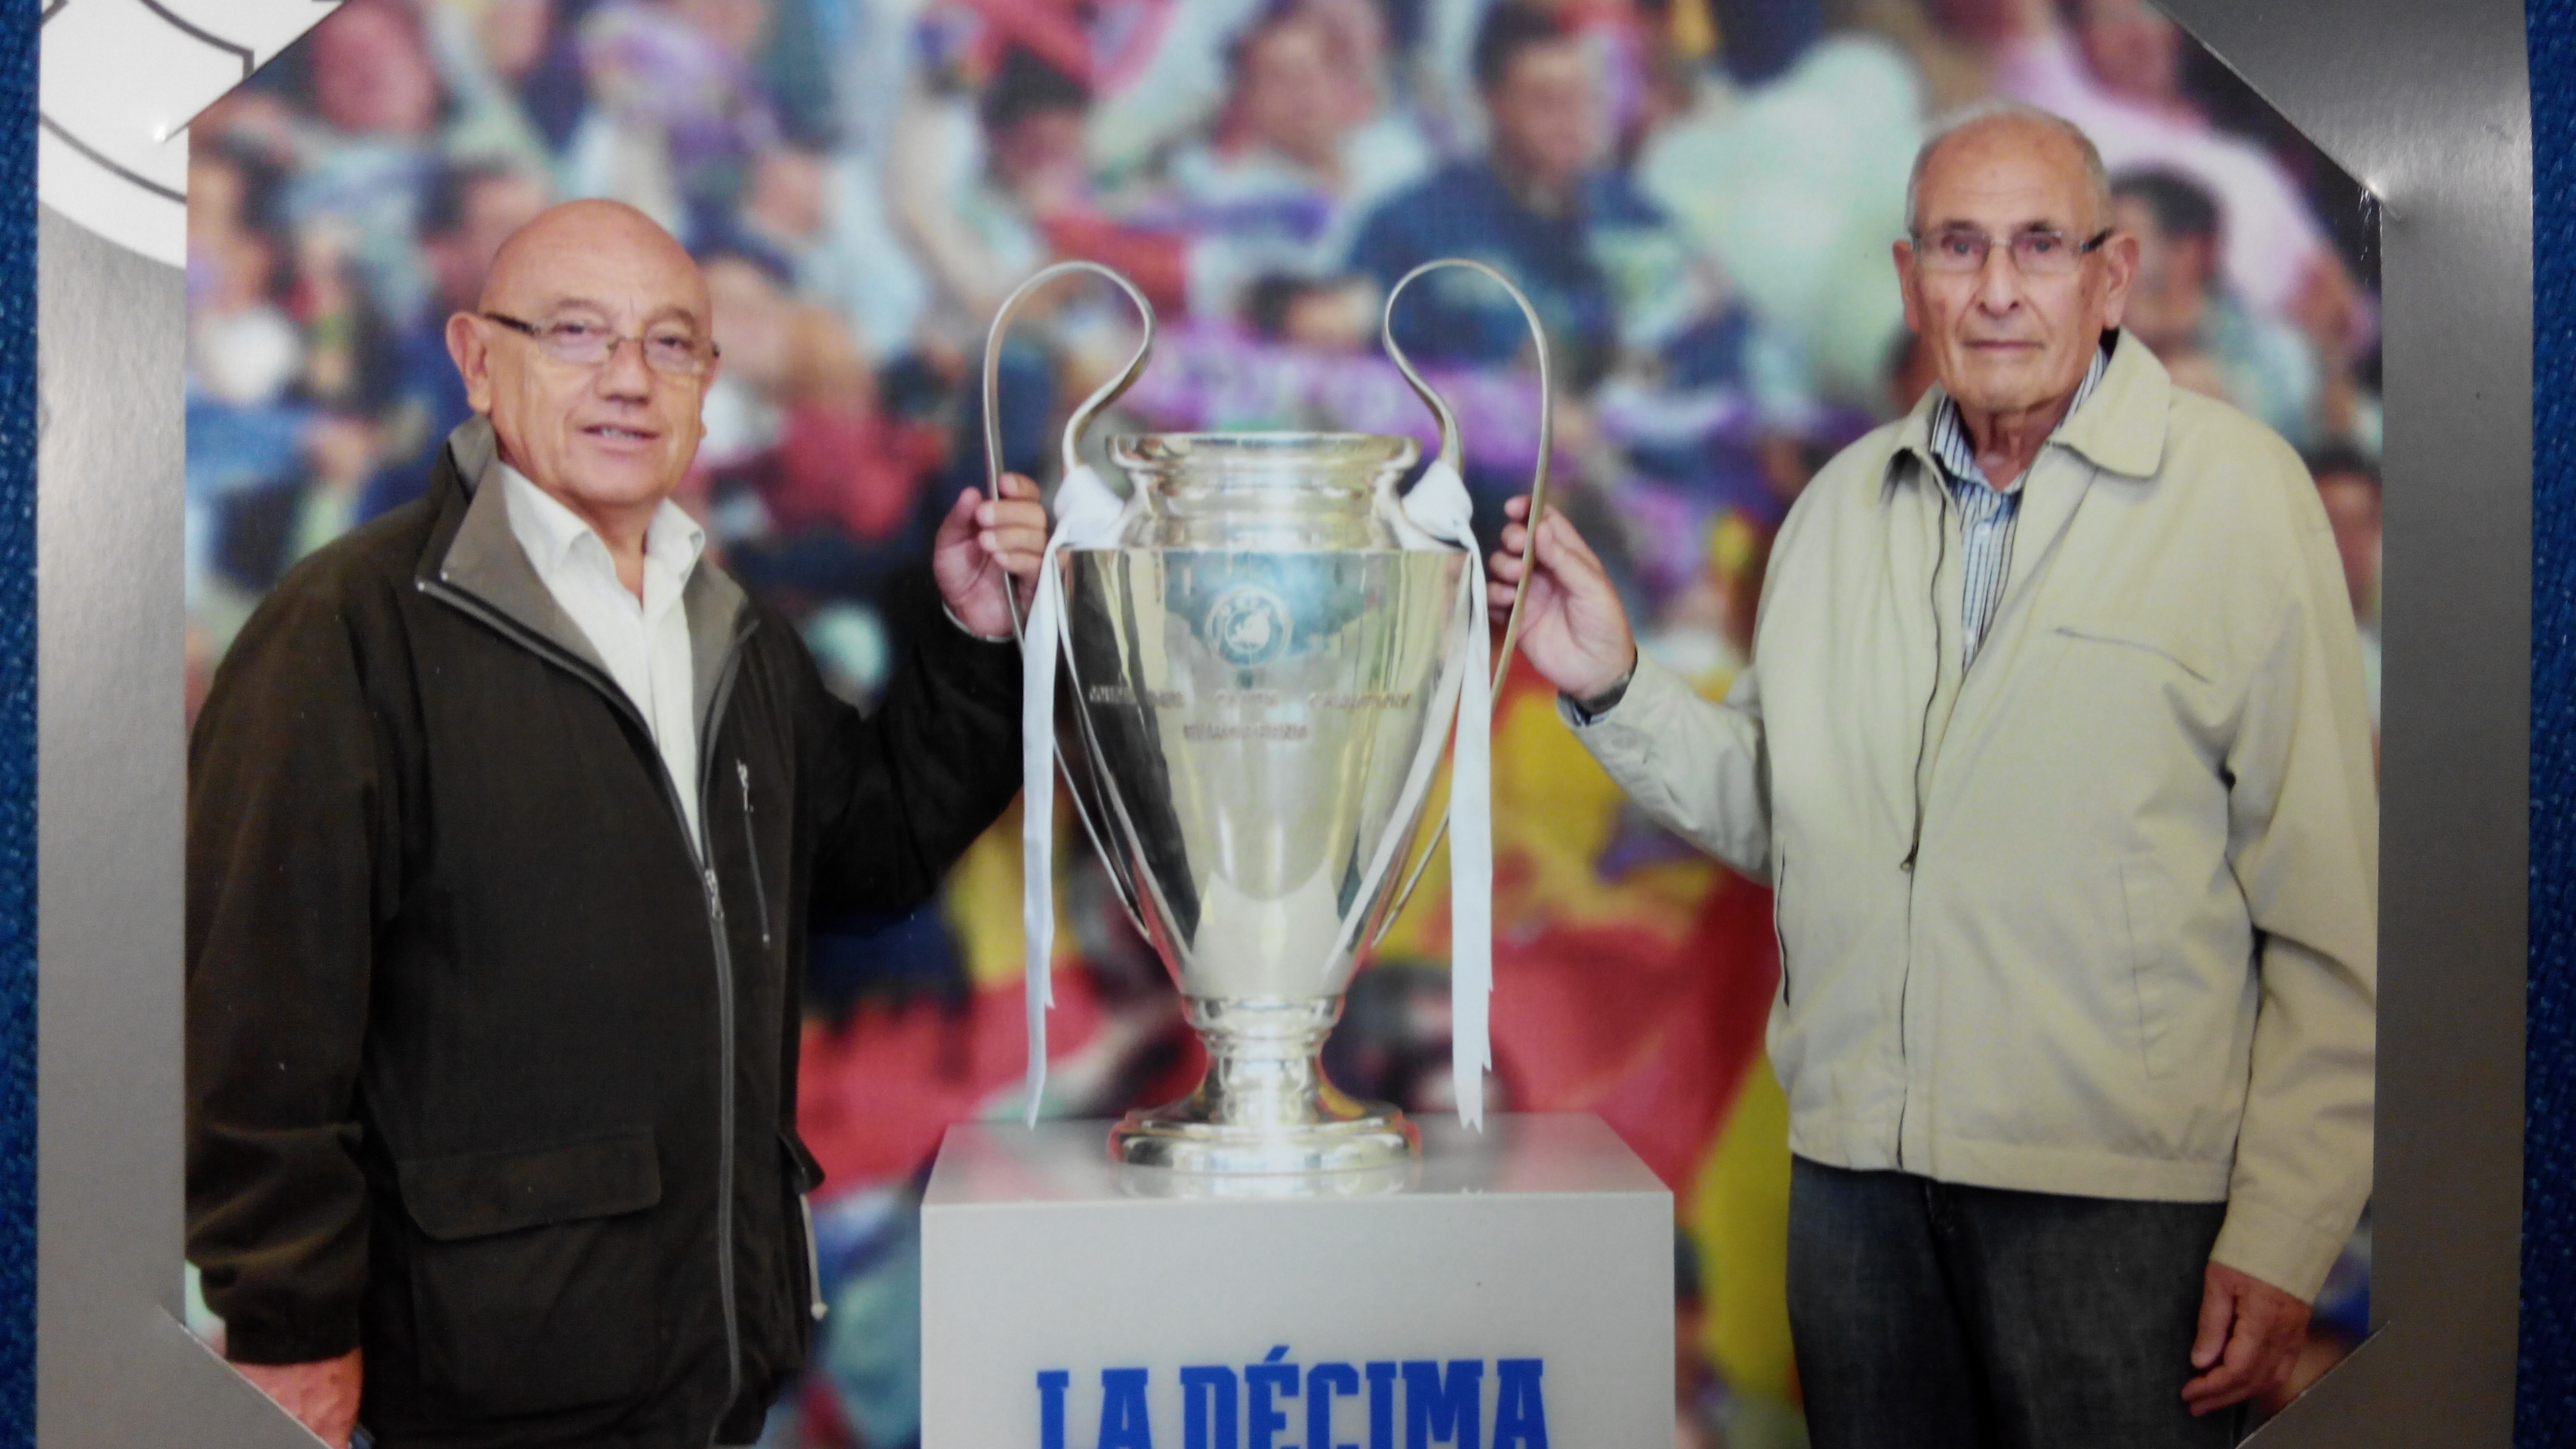 noticia fundacion real madrid tour bernabeu8